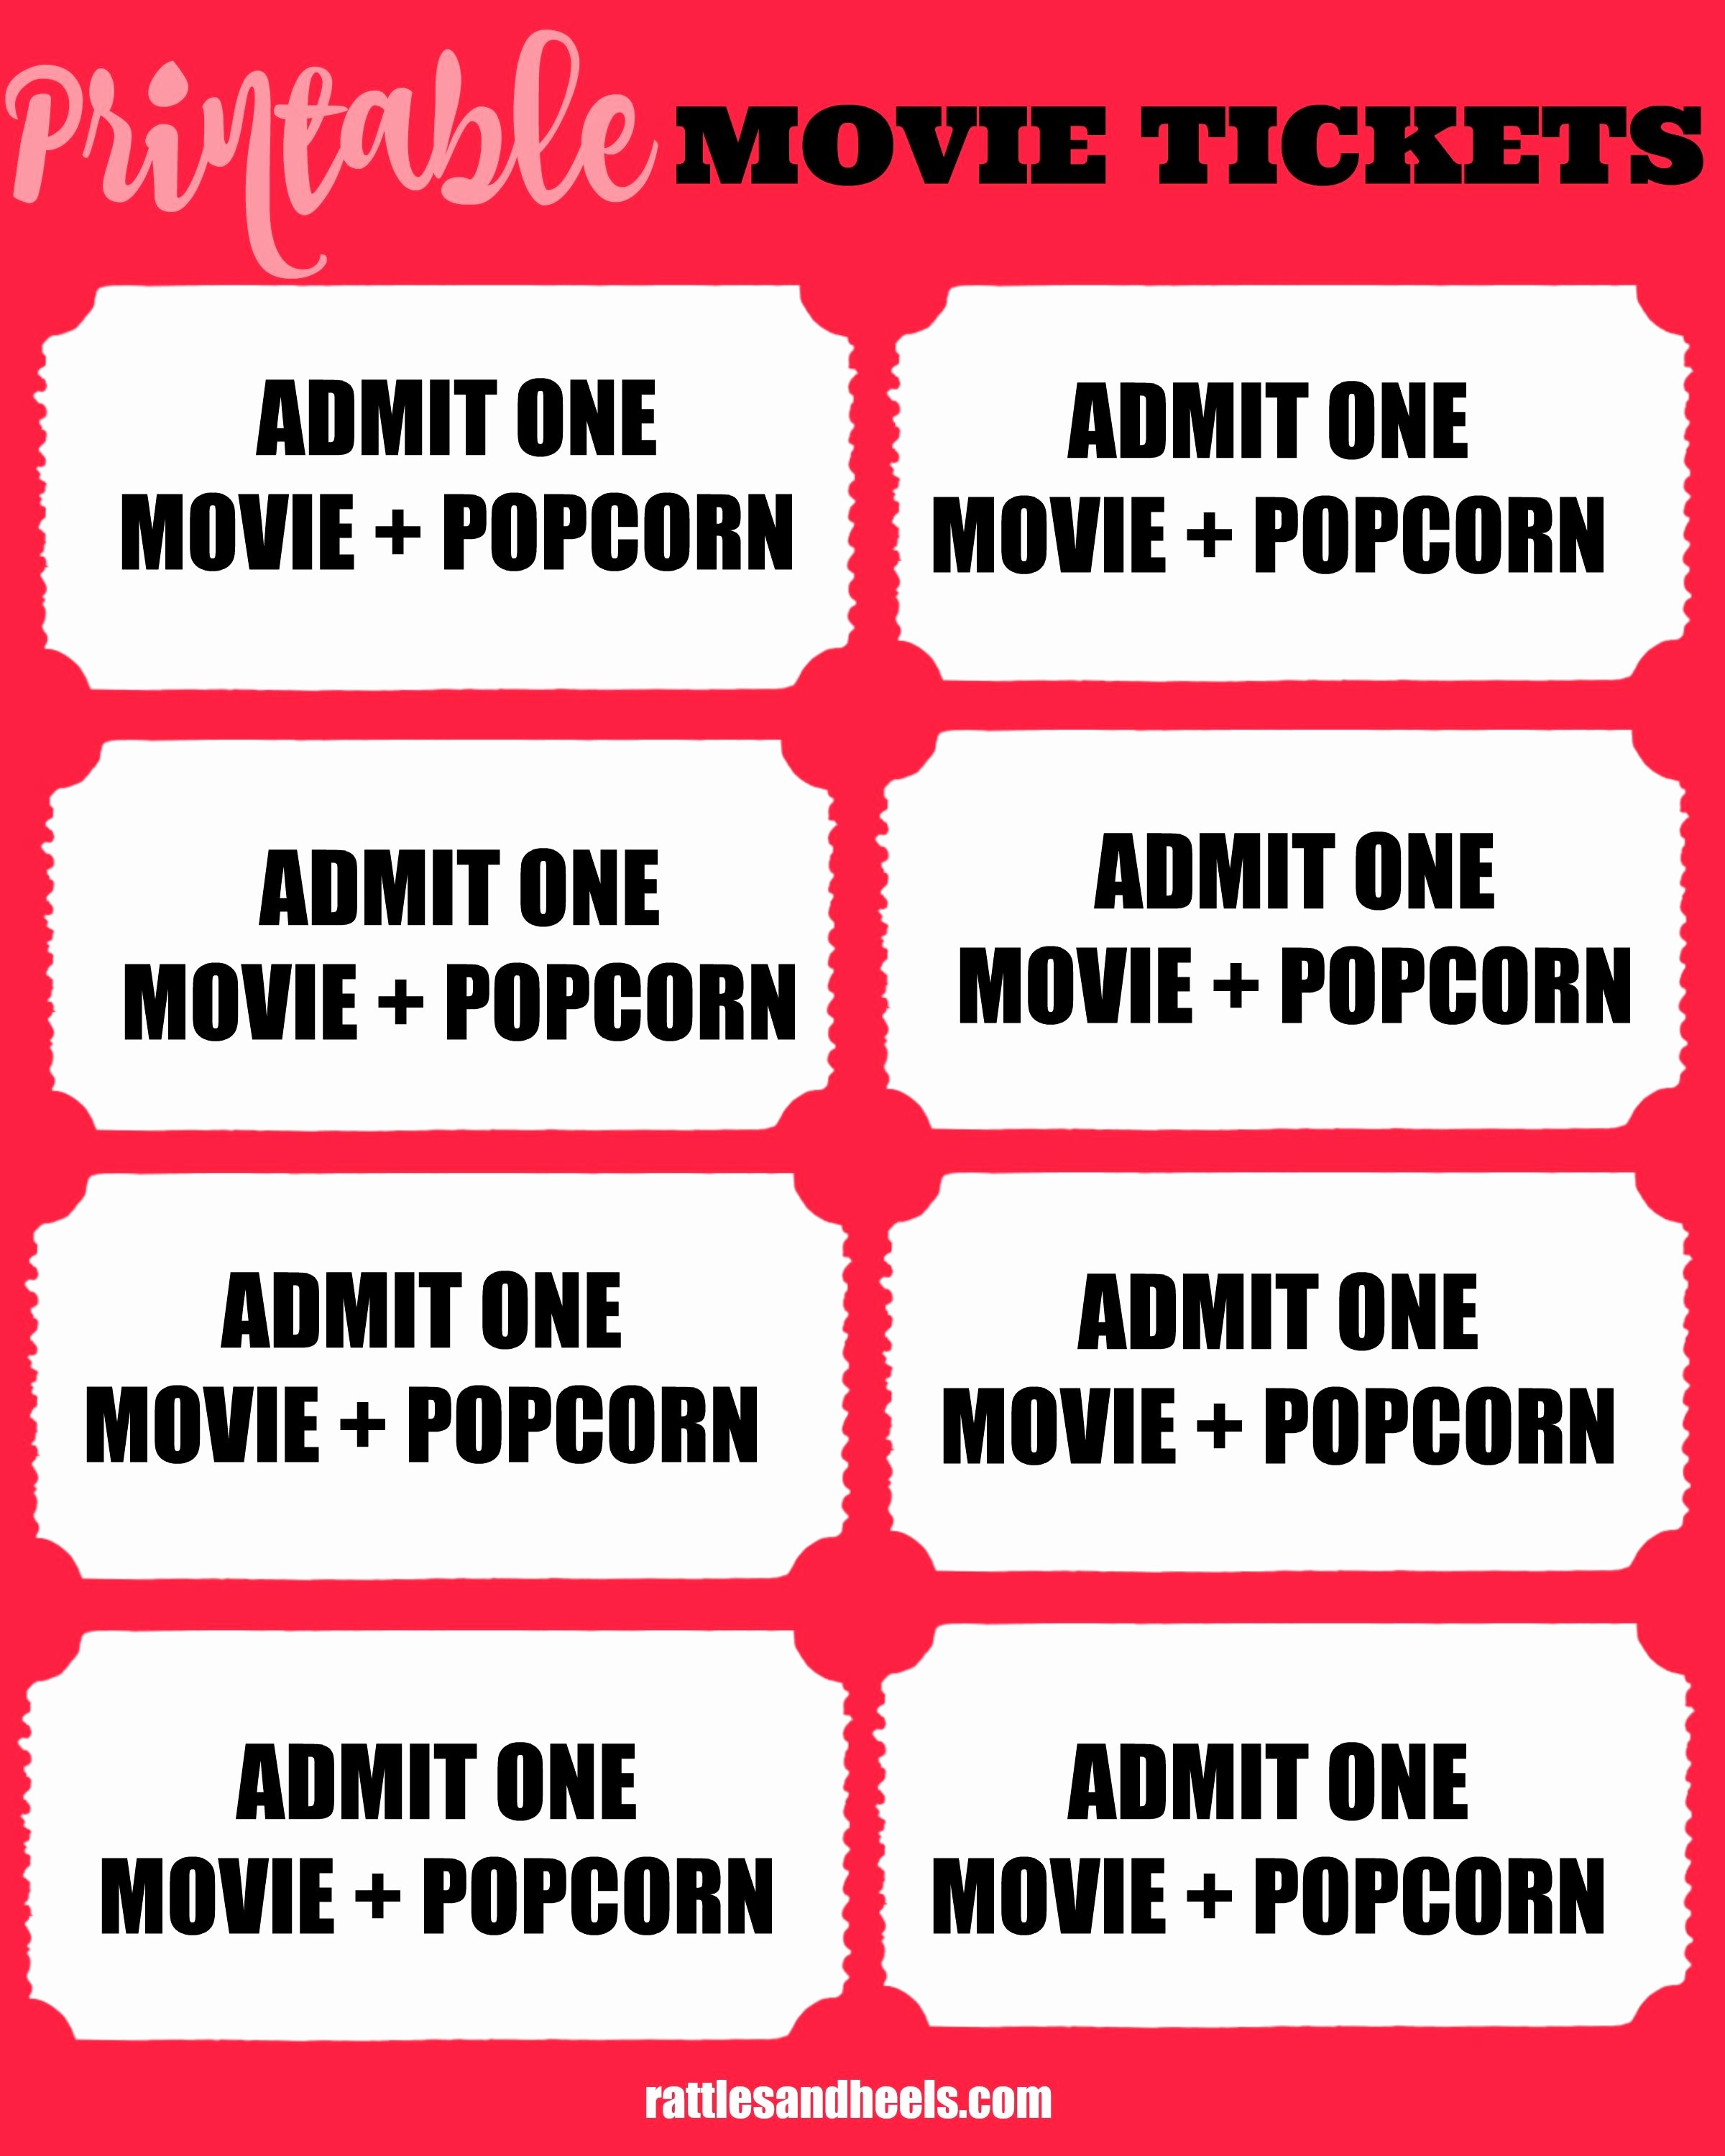 Movie Ticket Template Free Printable Fresh Family Movie Night with Printable Movie Tickets Giveaway